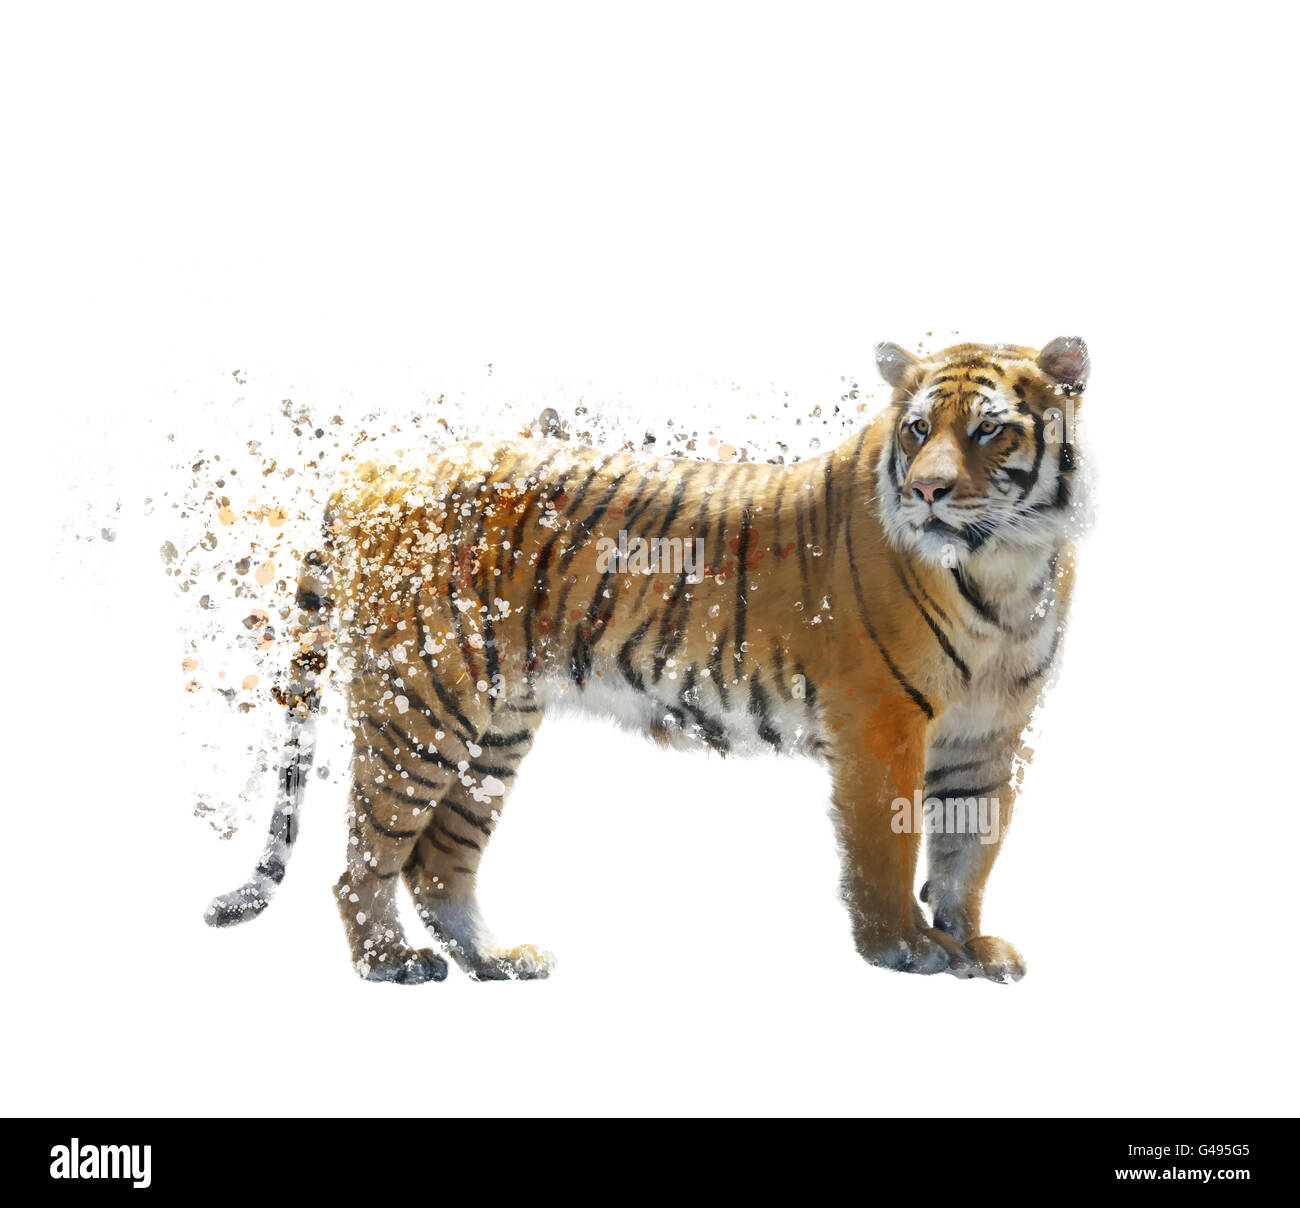 Digital Painting of Tiger on White background - Stock Image